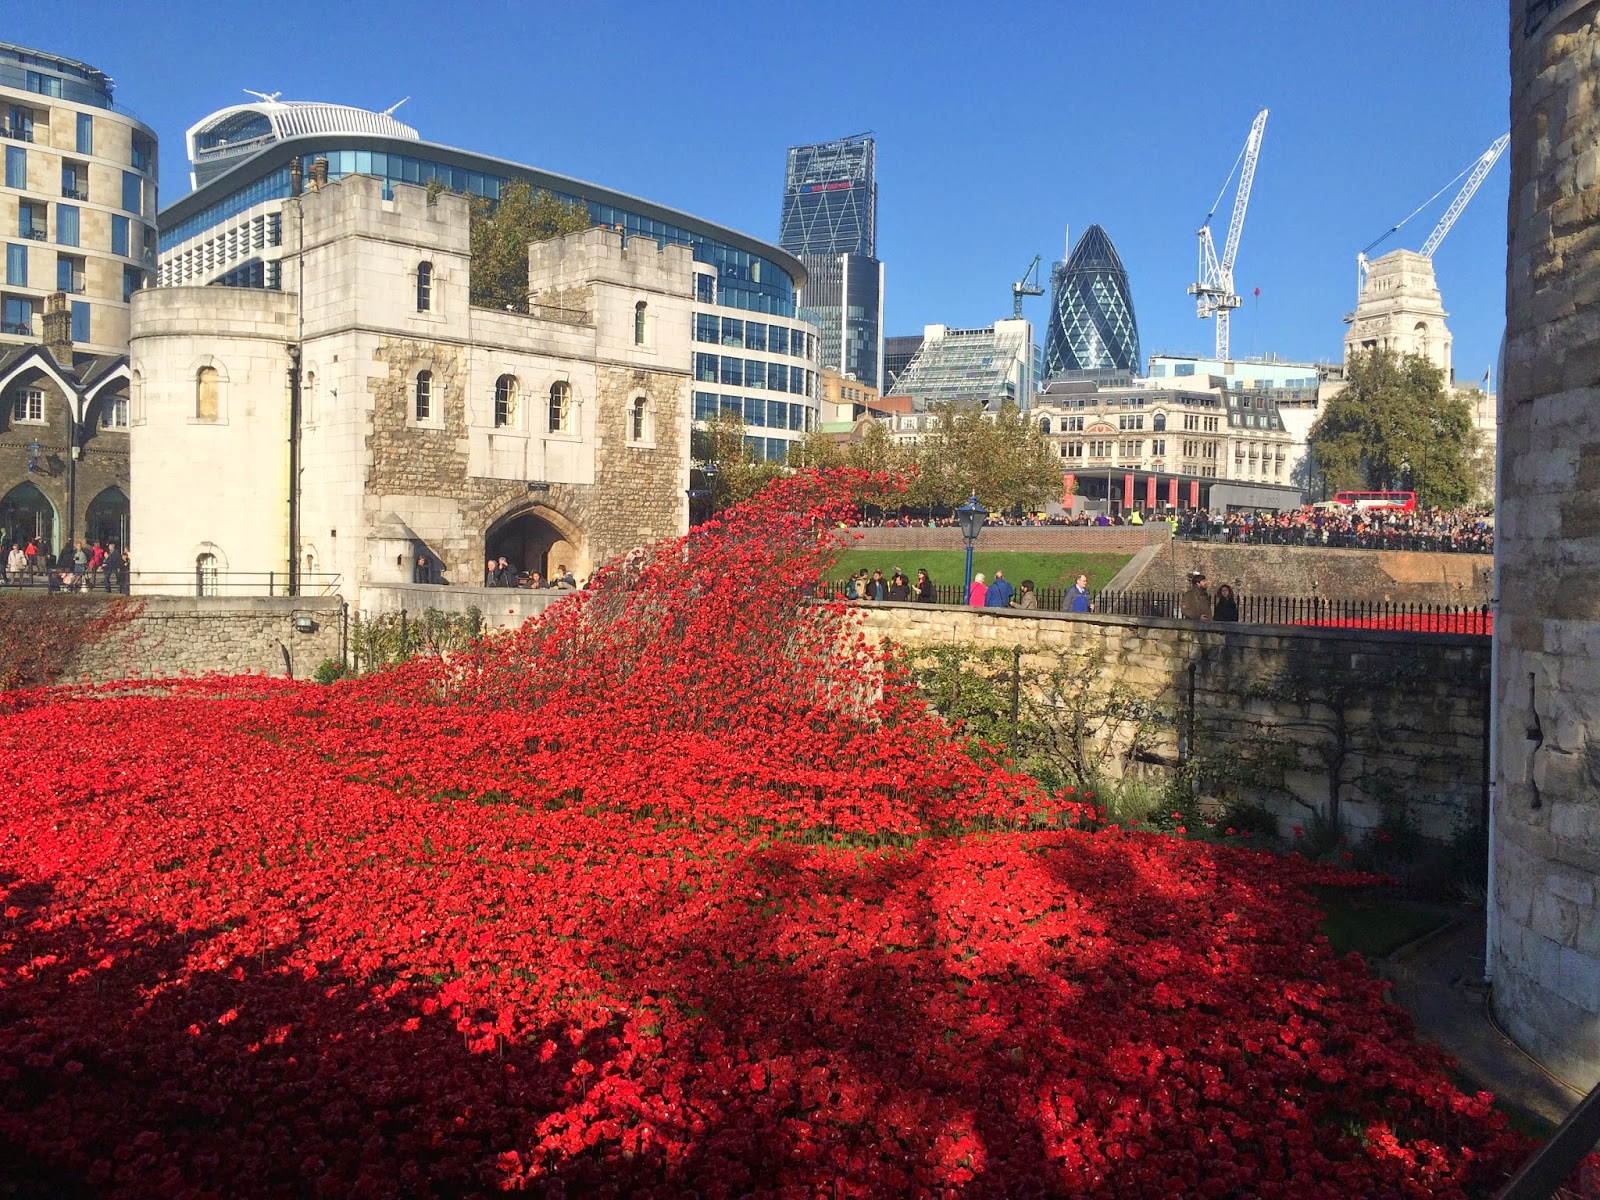 Poppies, land art, garden design, London, tower of London, landscape